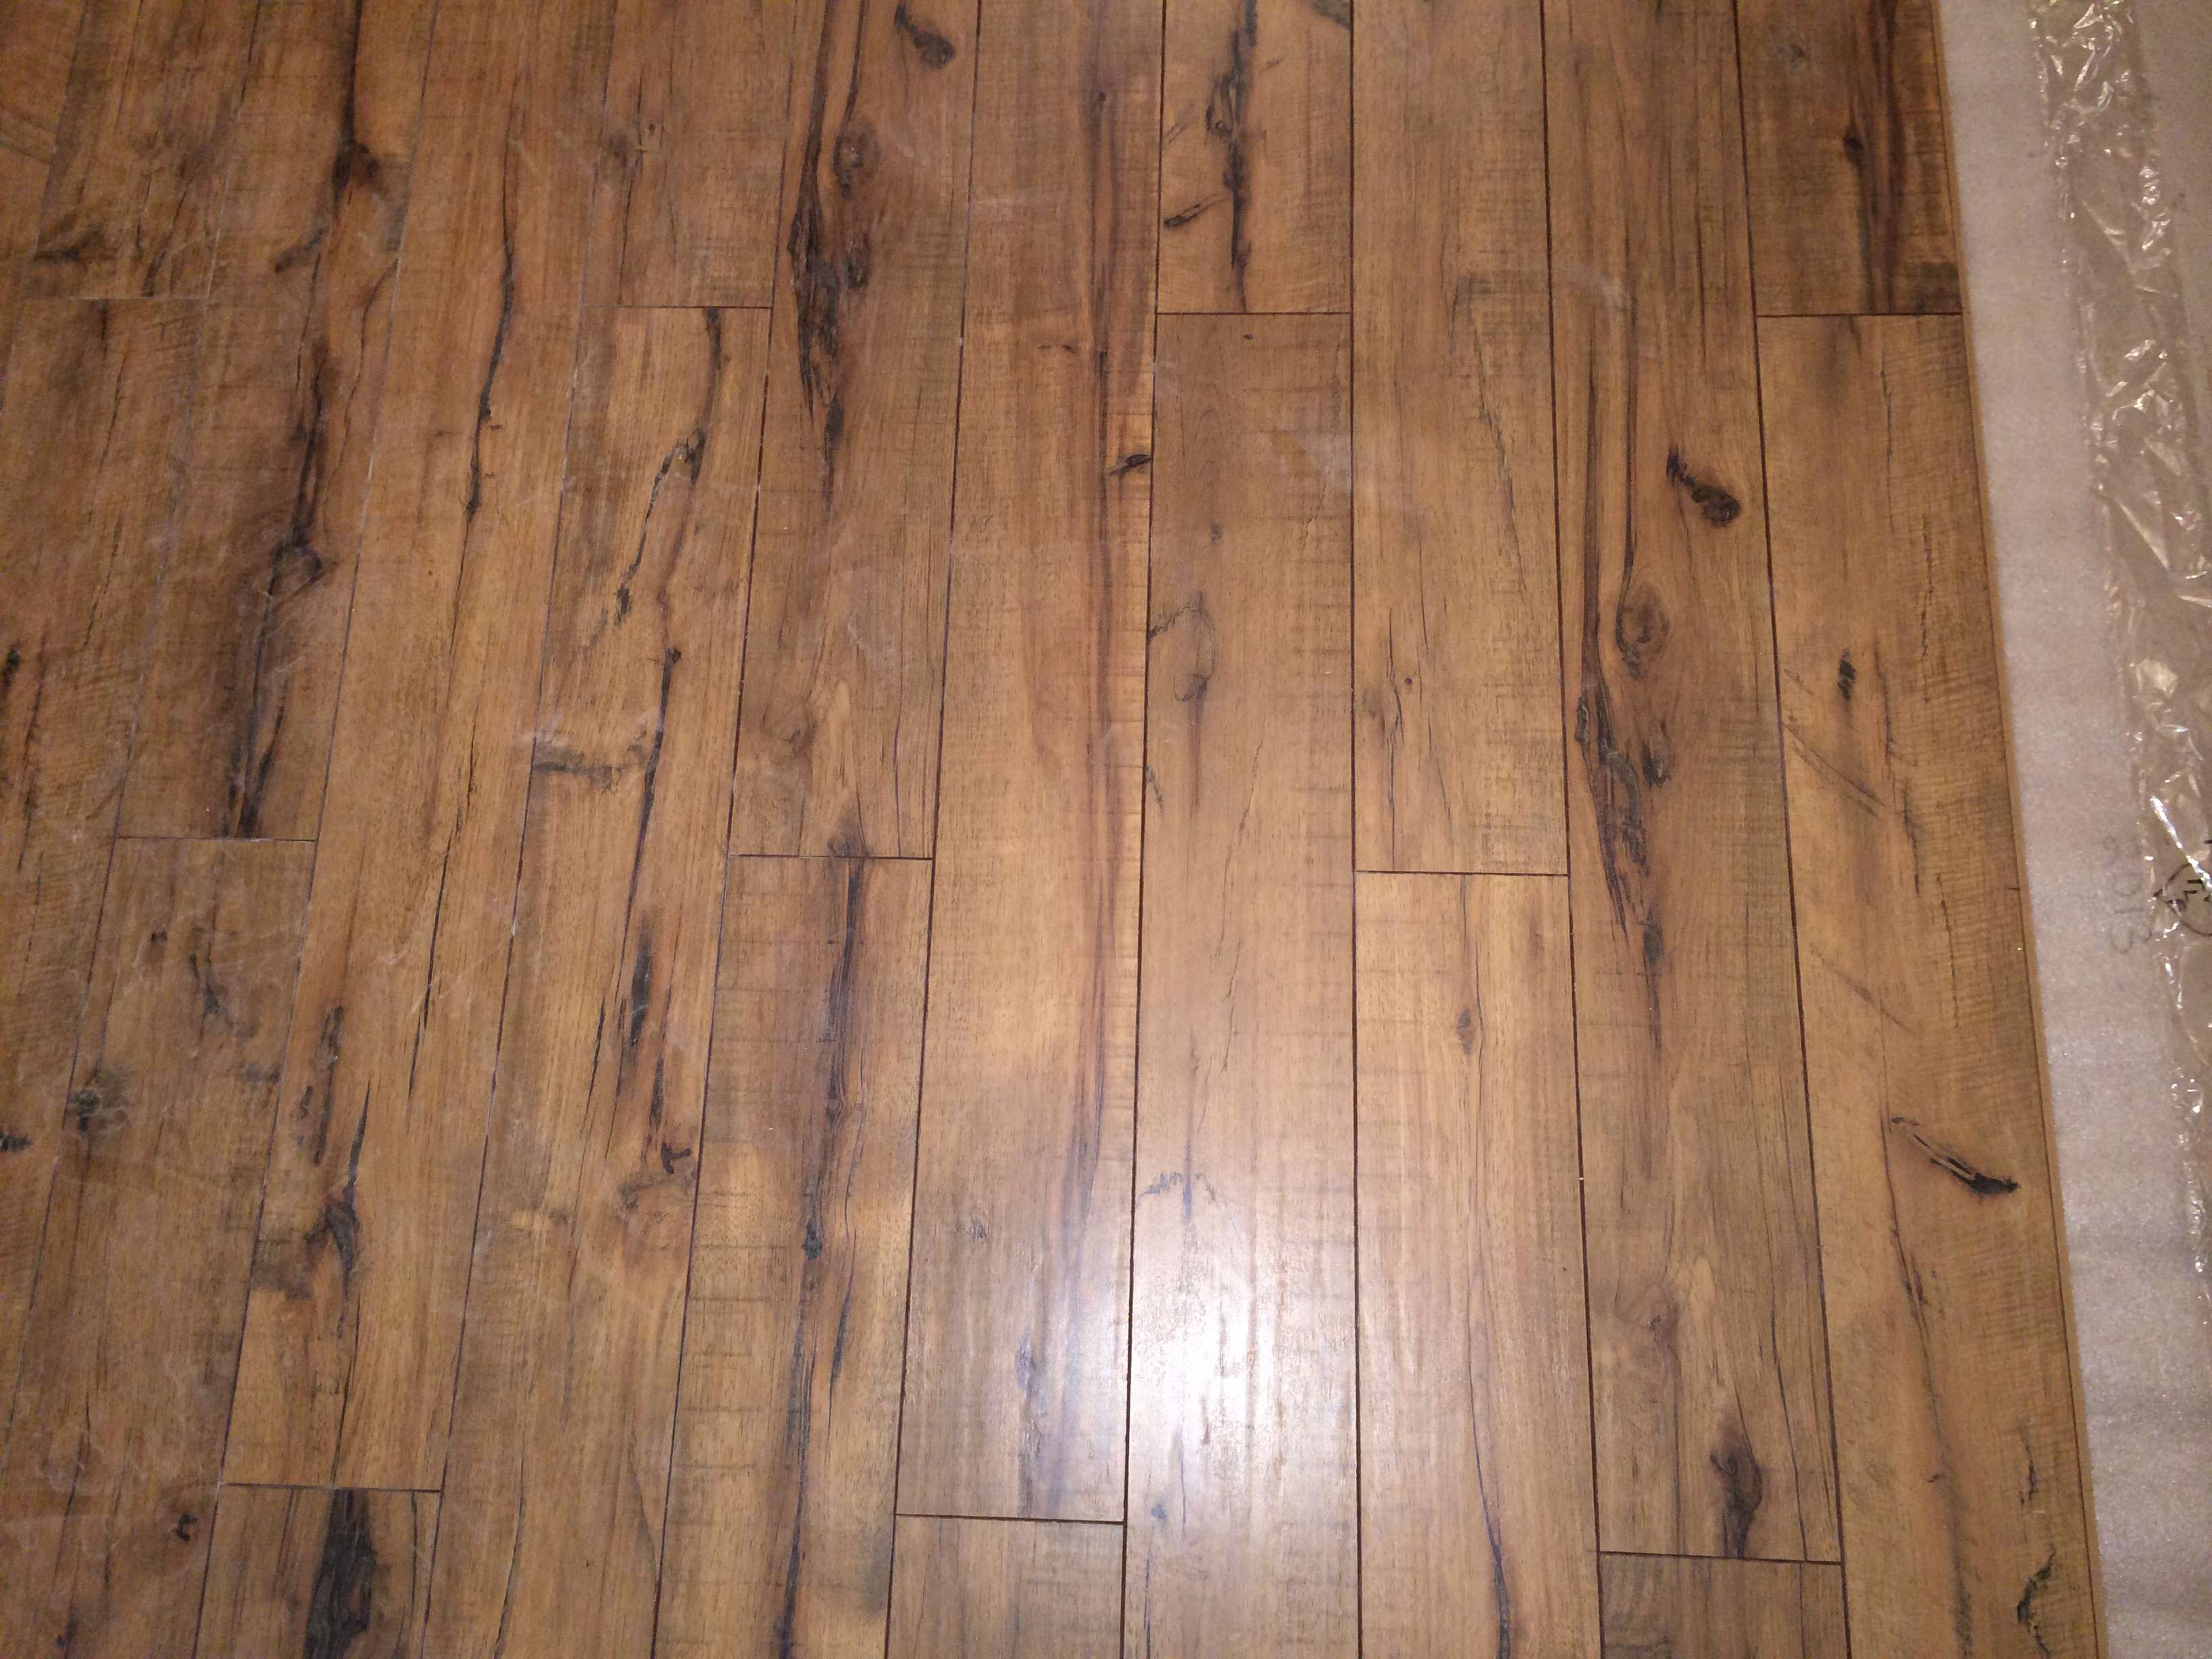 lowes solid oak hardwood flooring of flooring cozy interior wooden floor design with lowes pergo spy inside lowes pergo lowes hardwood flooring prices oak flooring lowes